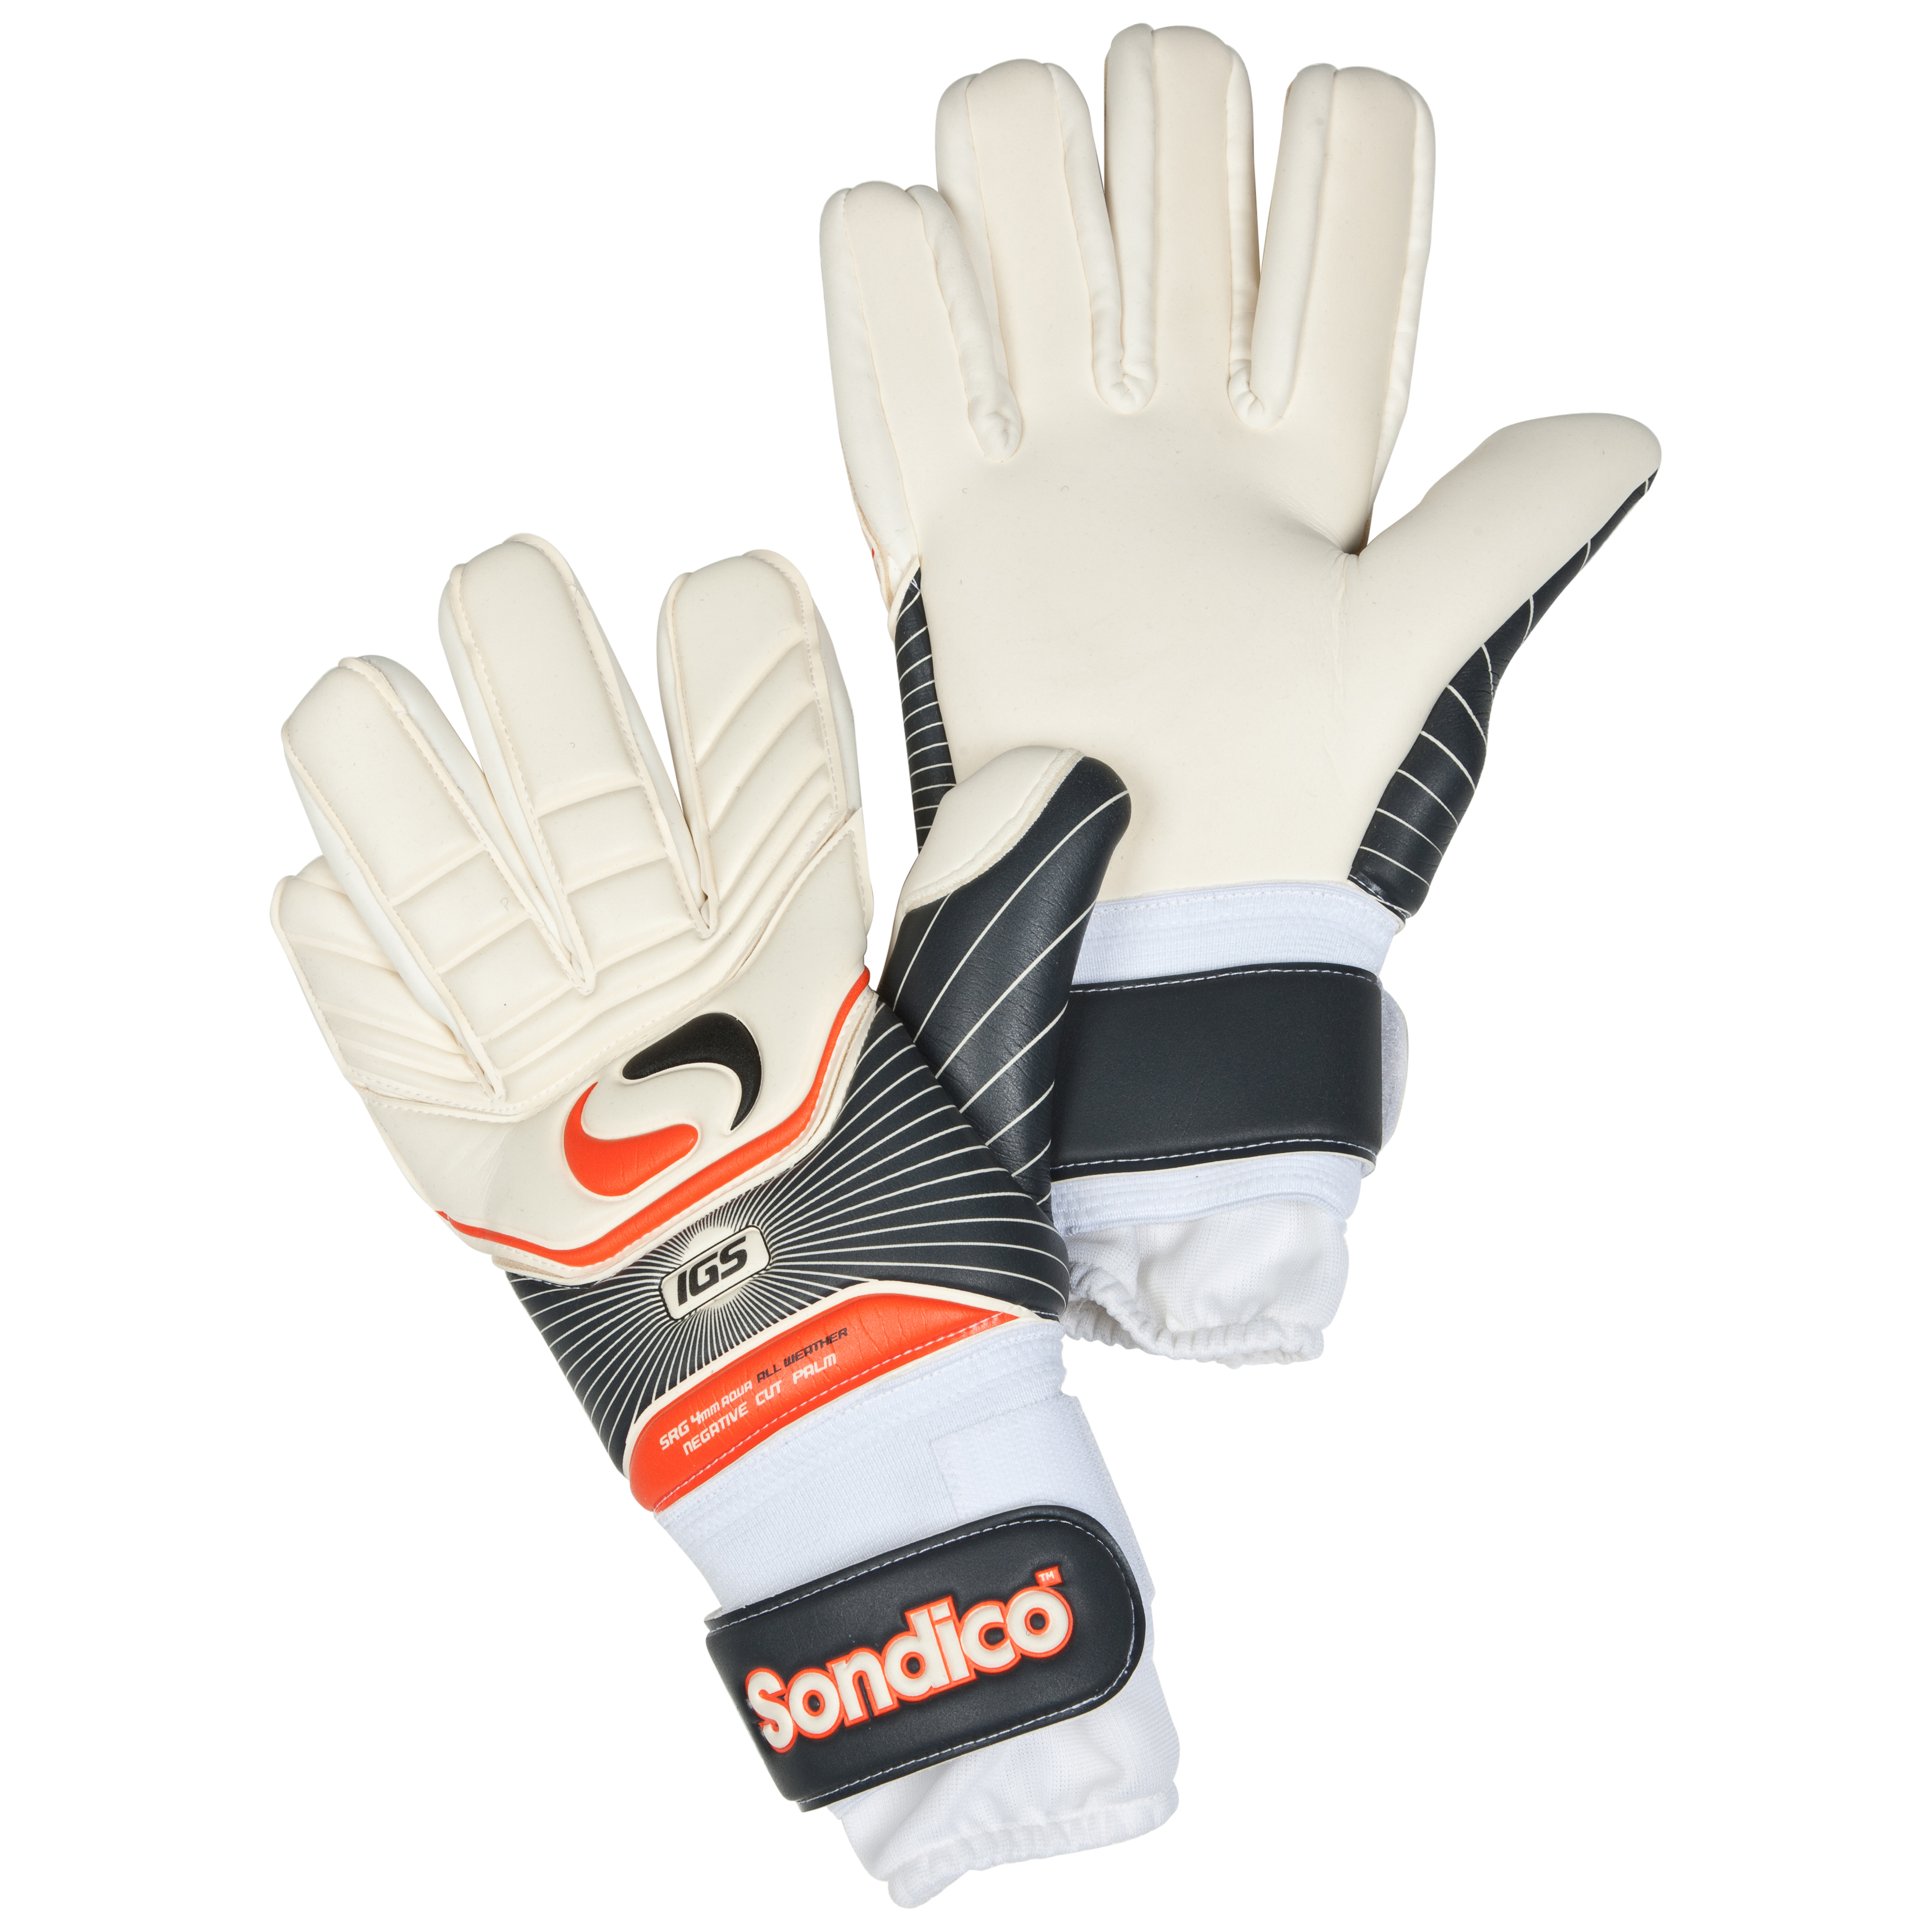 Sondico Ultima Pro Negative Cut Goalkeeper Gloves - Black/White/Gun Metal/Orange